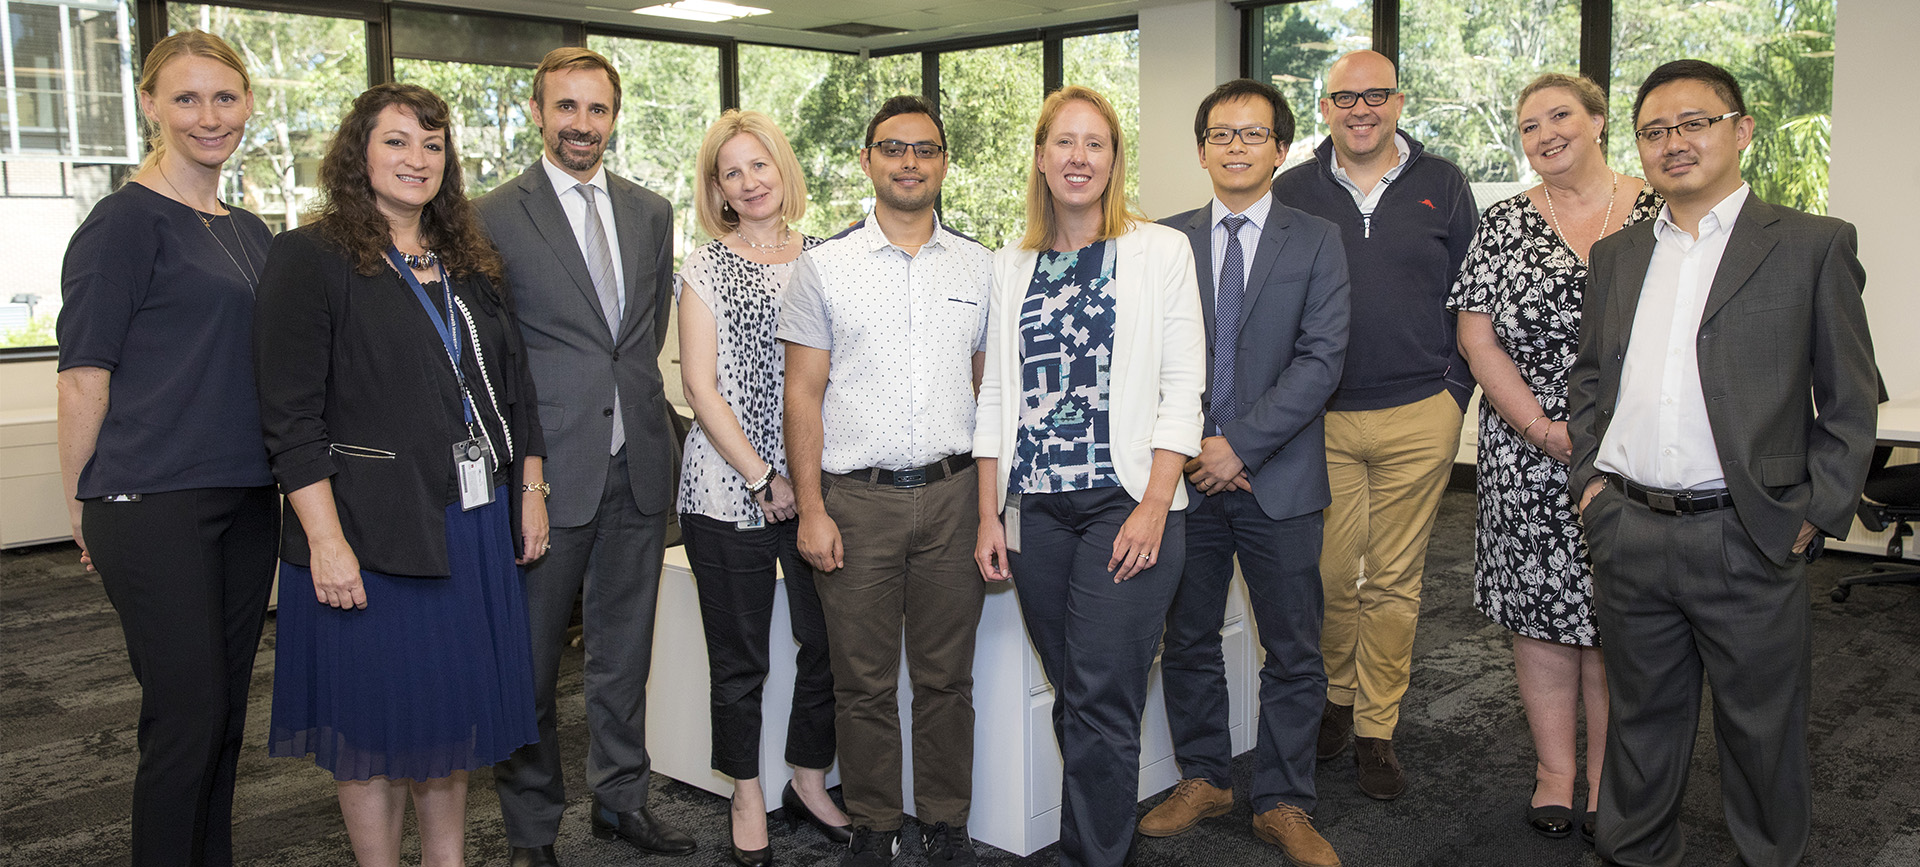 The Centre for the Health Economy celebrates new growth and